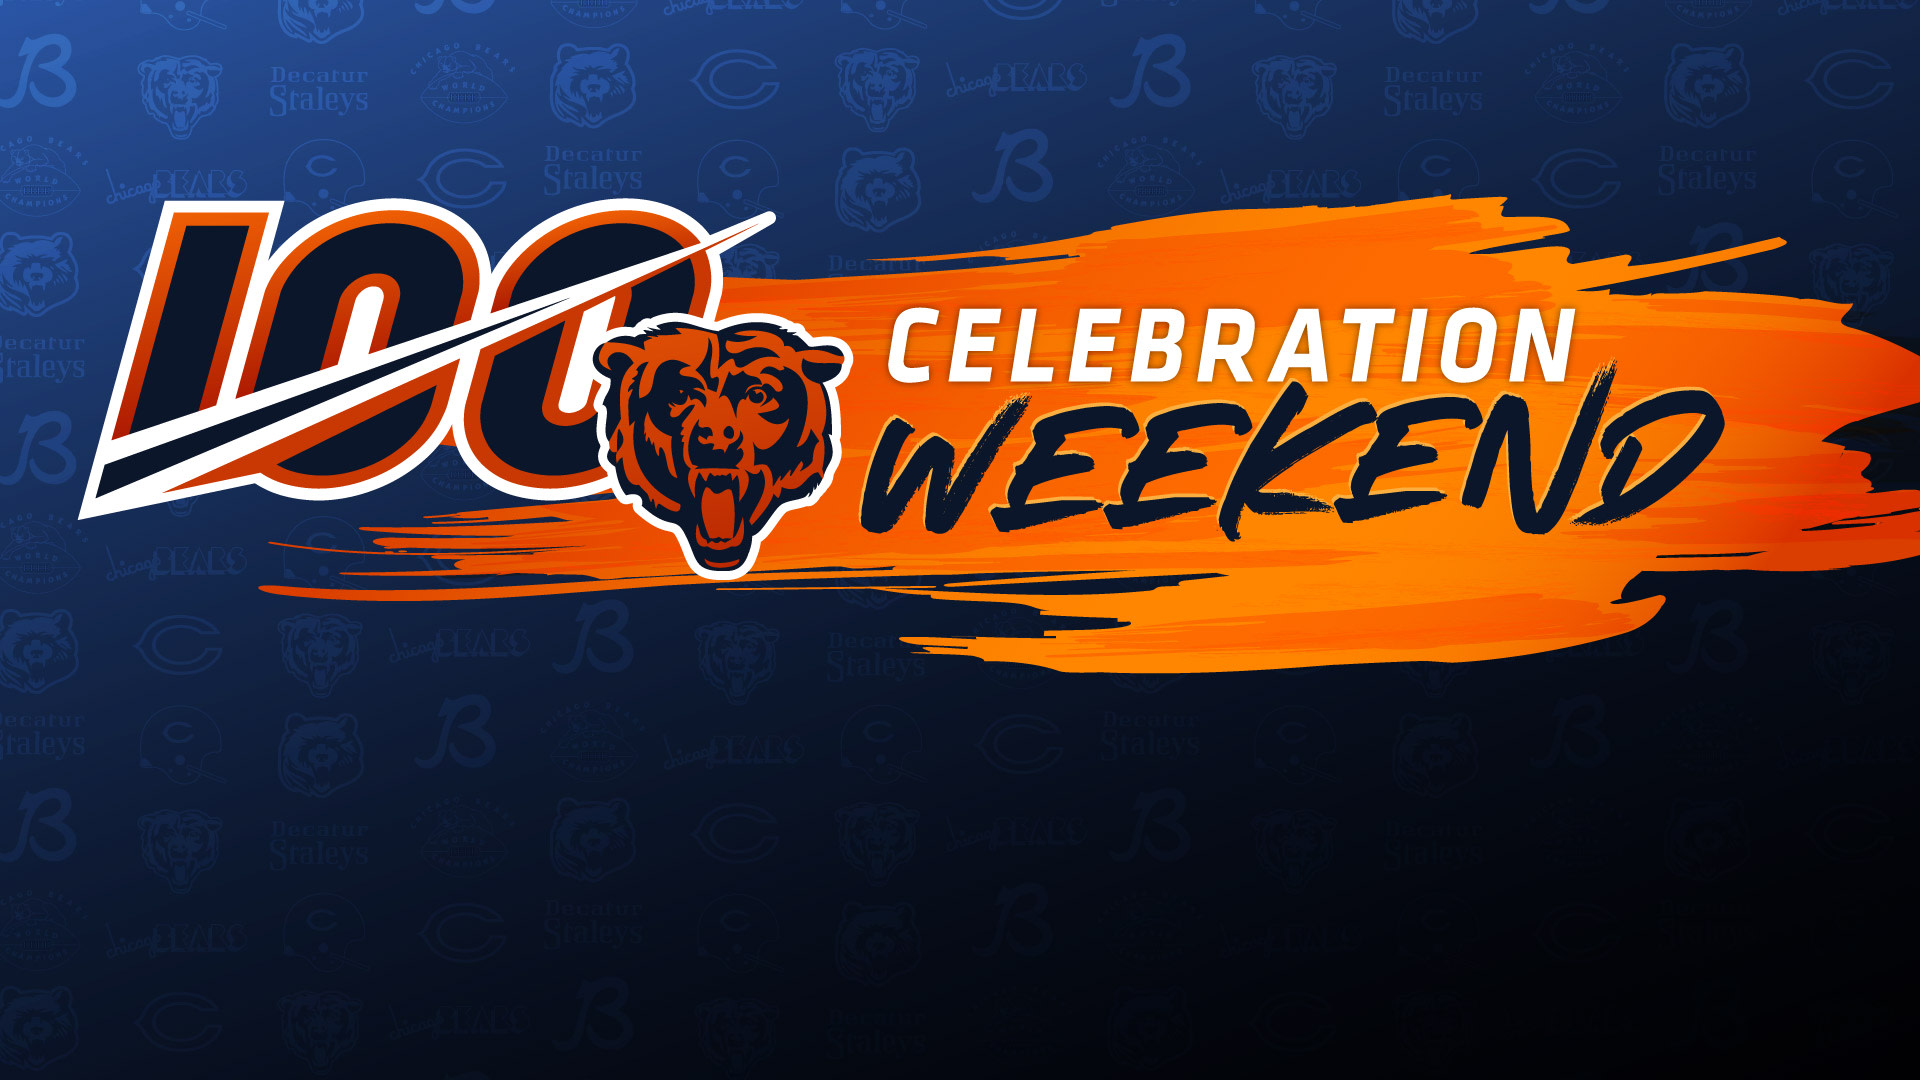 Bears100 Celebration Weekend